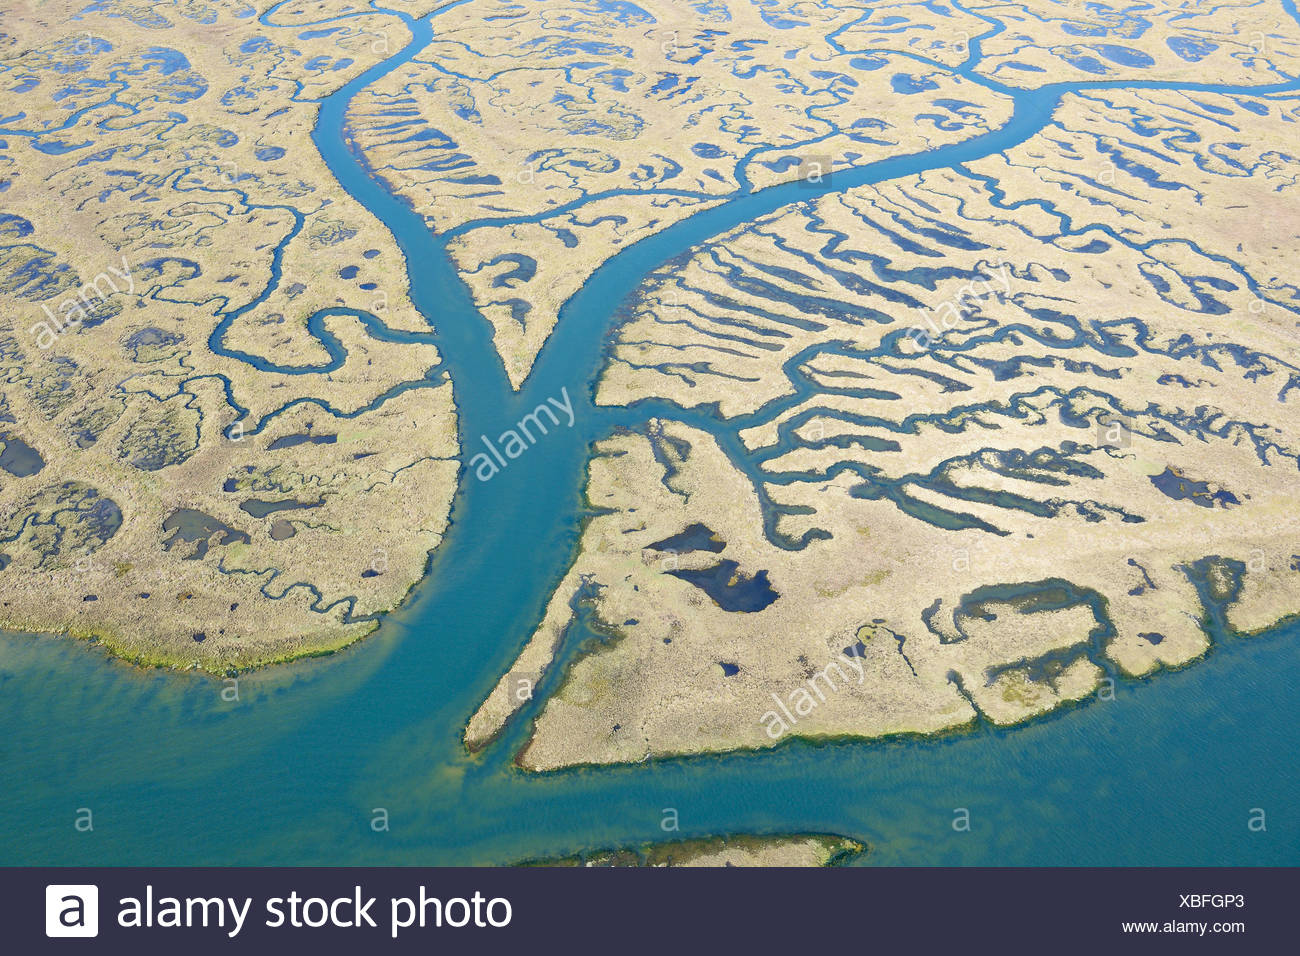 Spain, Andalusia, View of marshland - Stock Image